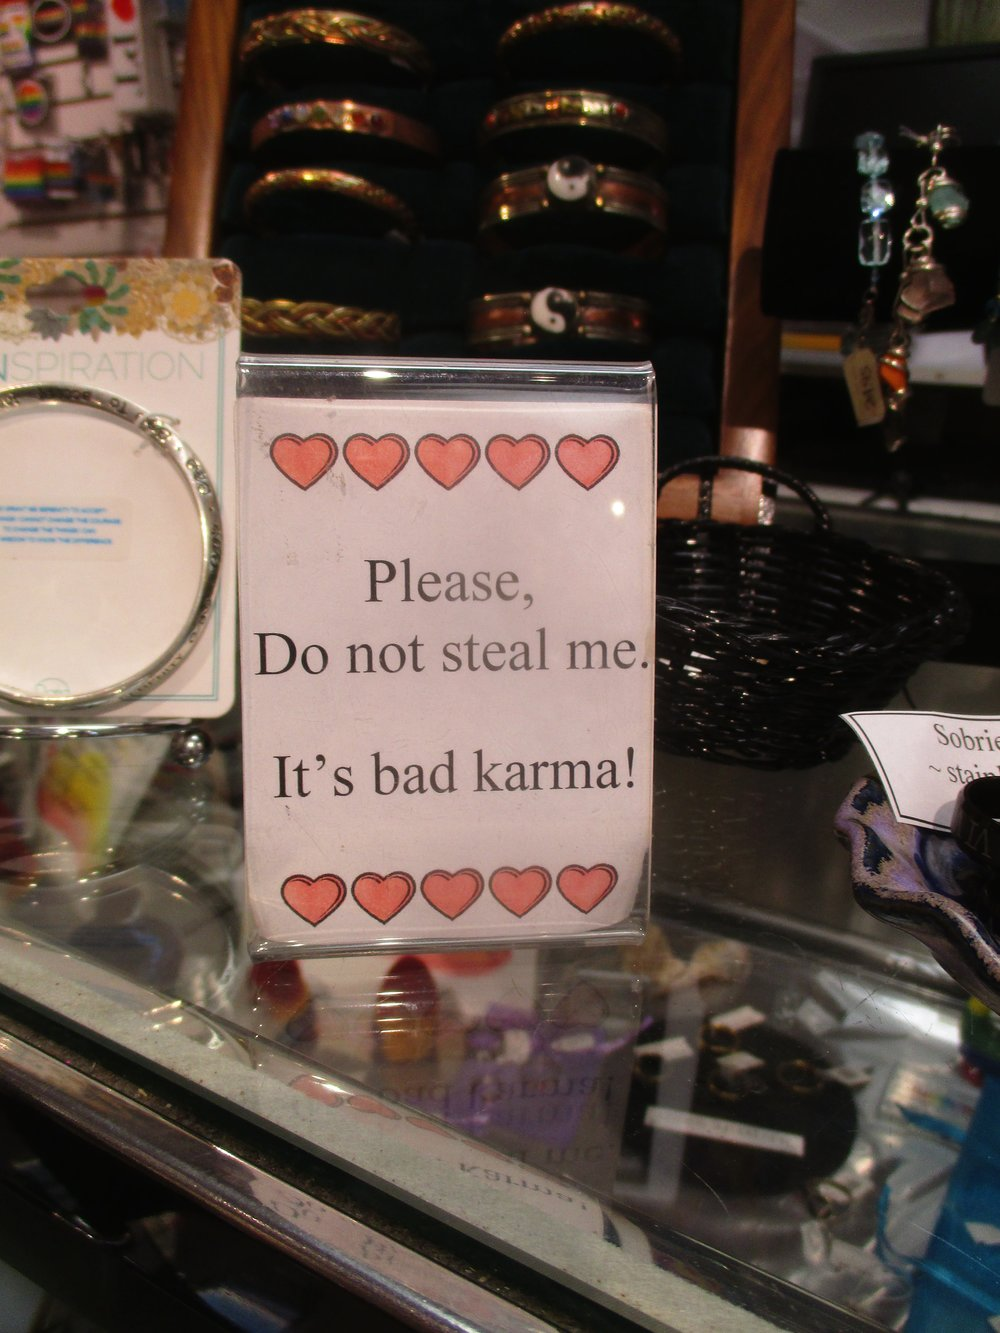 In a shop in Provincetown, Massachusetts.